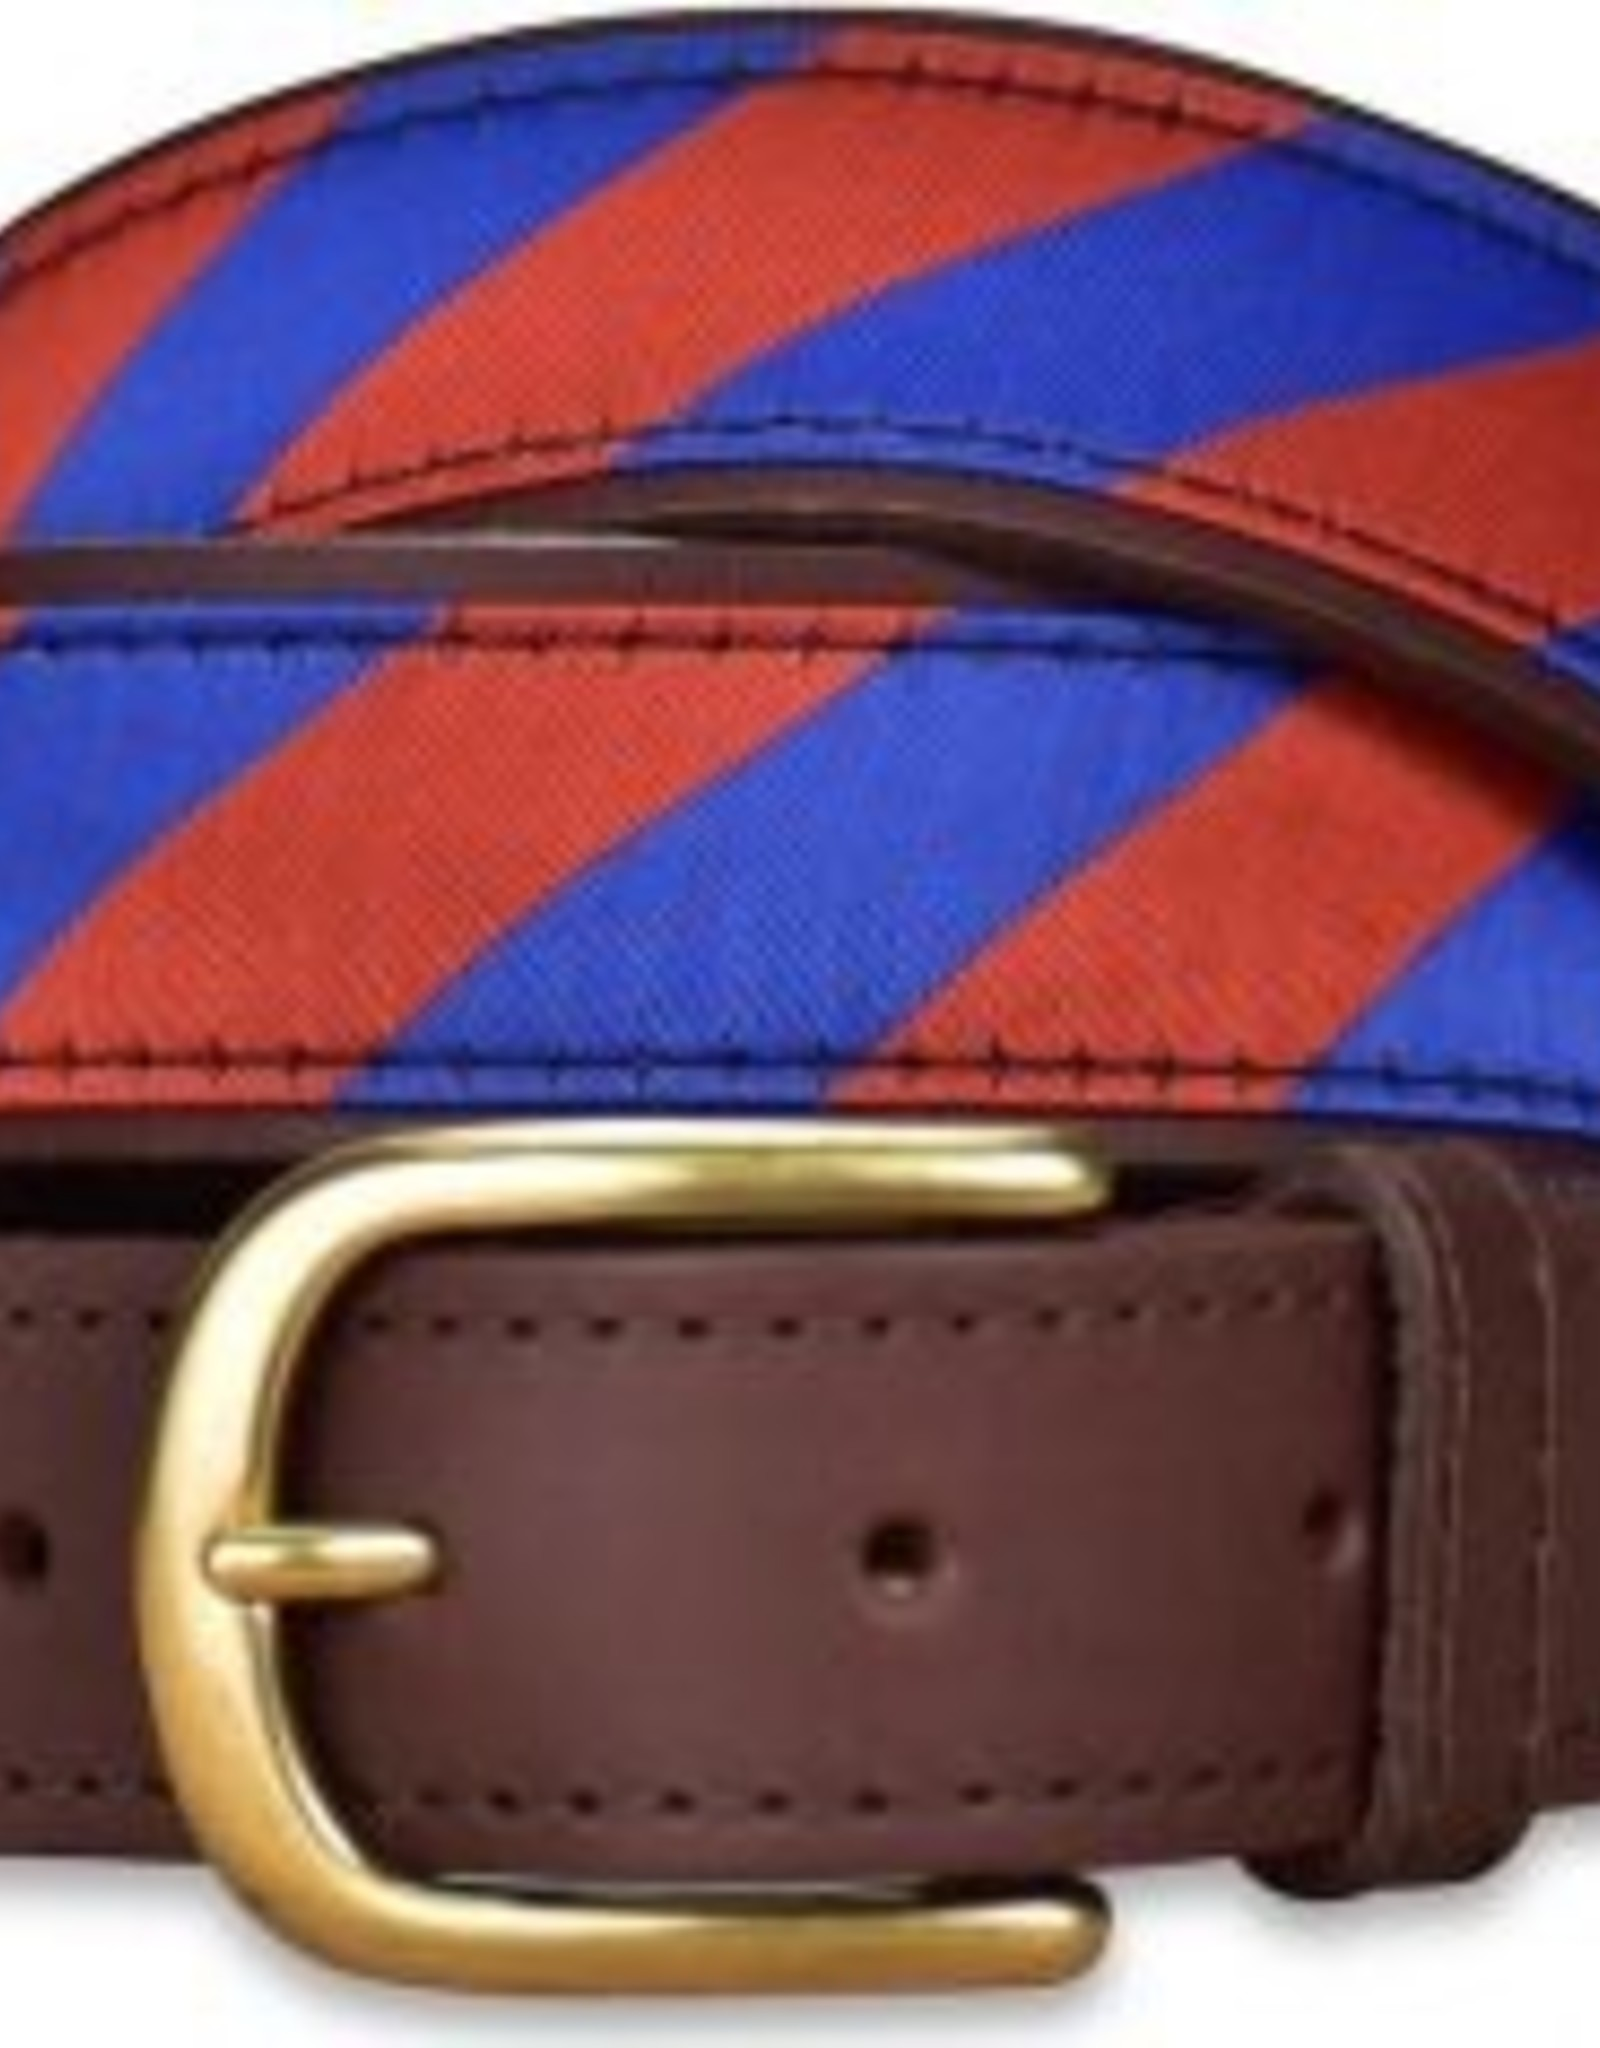 CLARKSON STRIPE PEDIGREE BELT